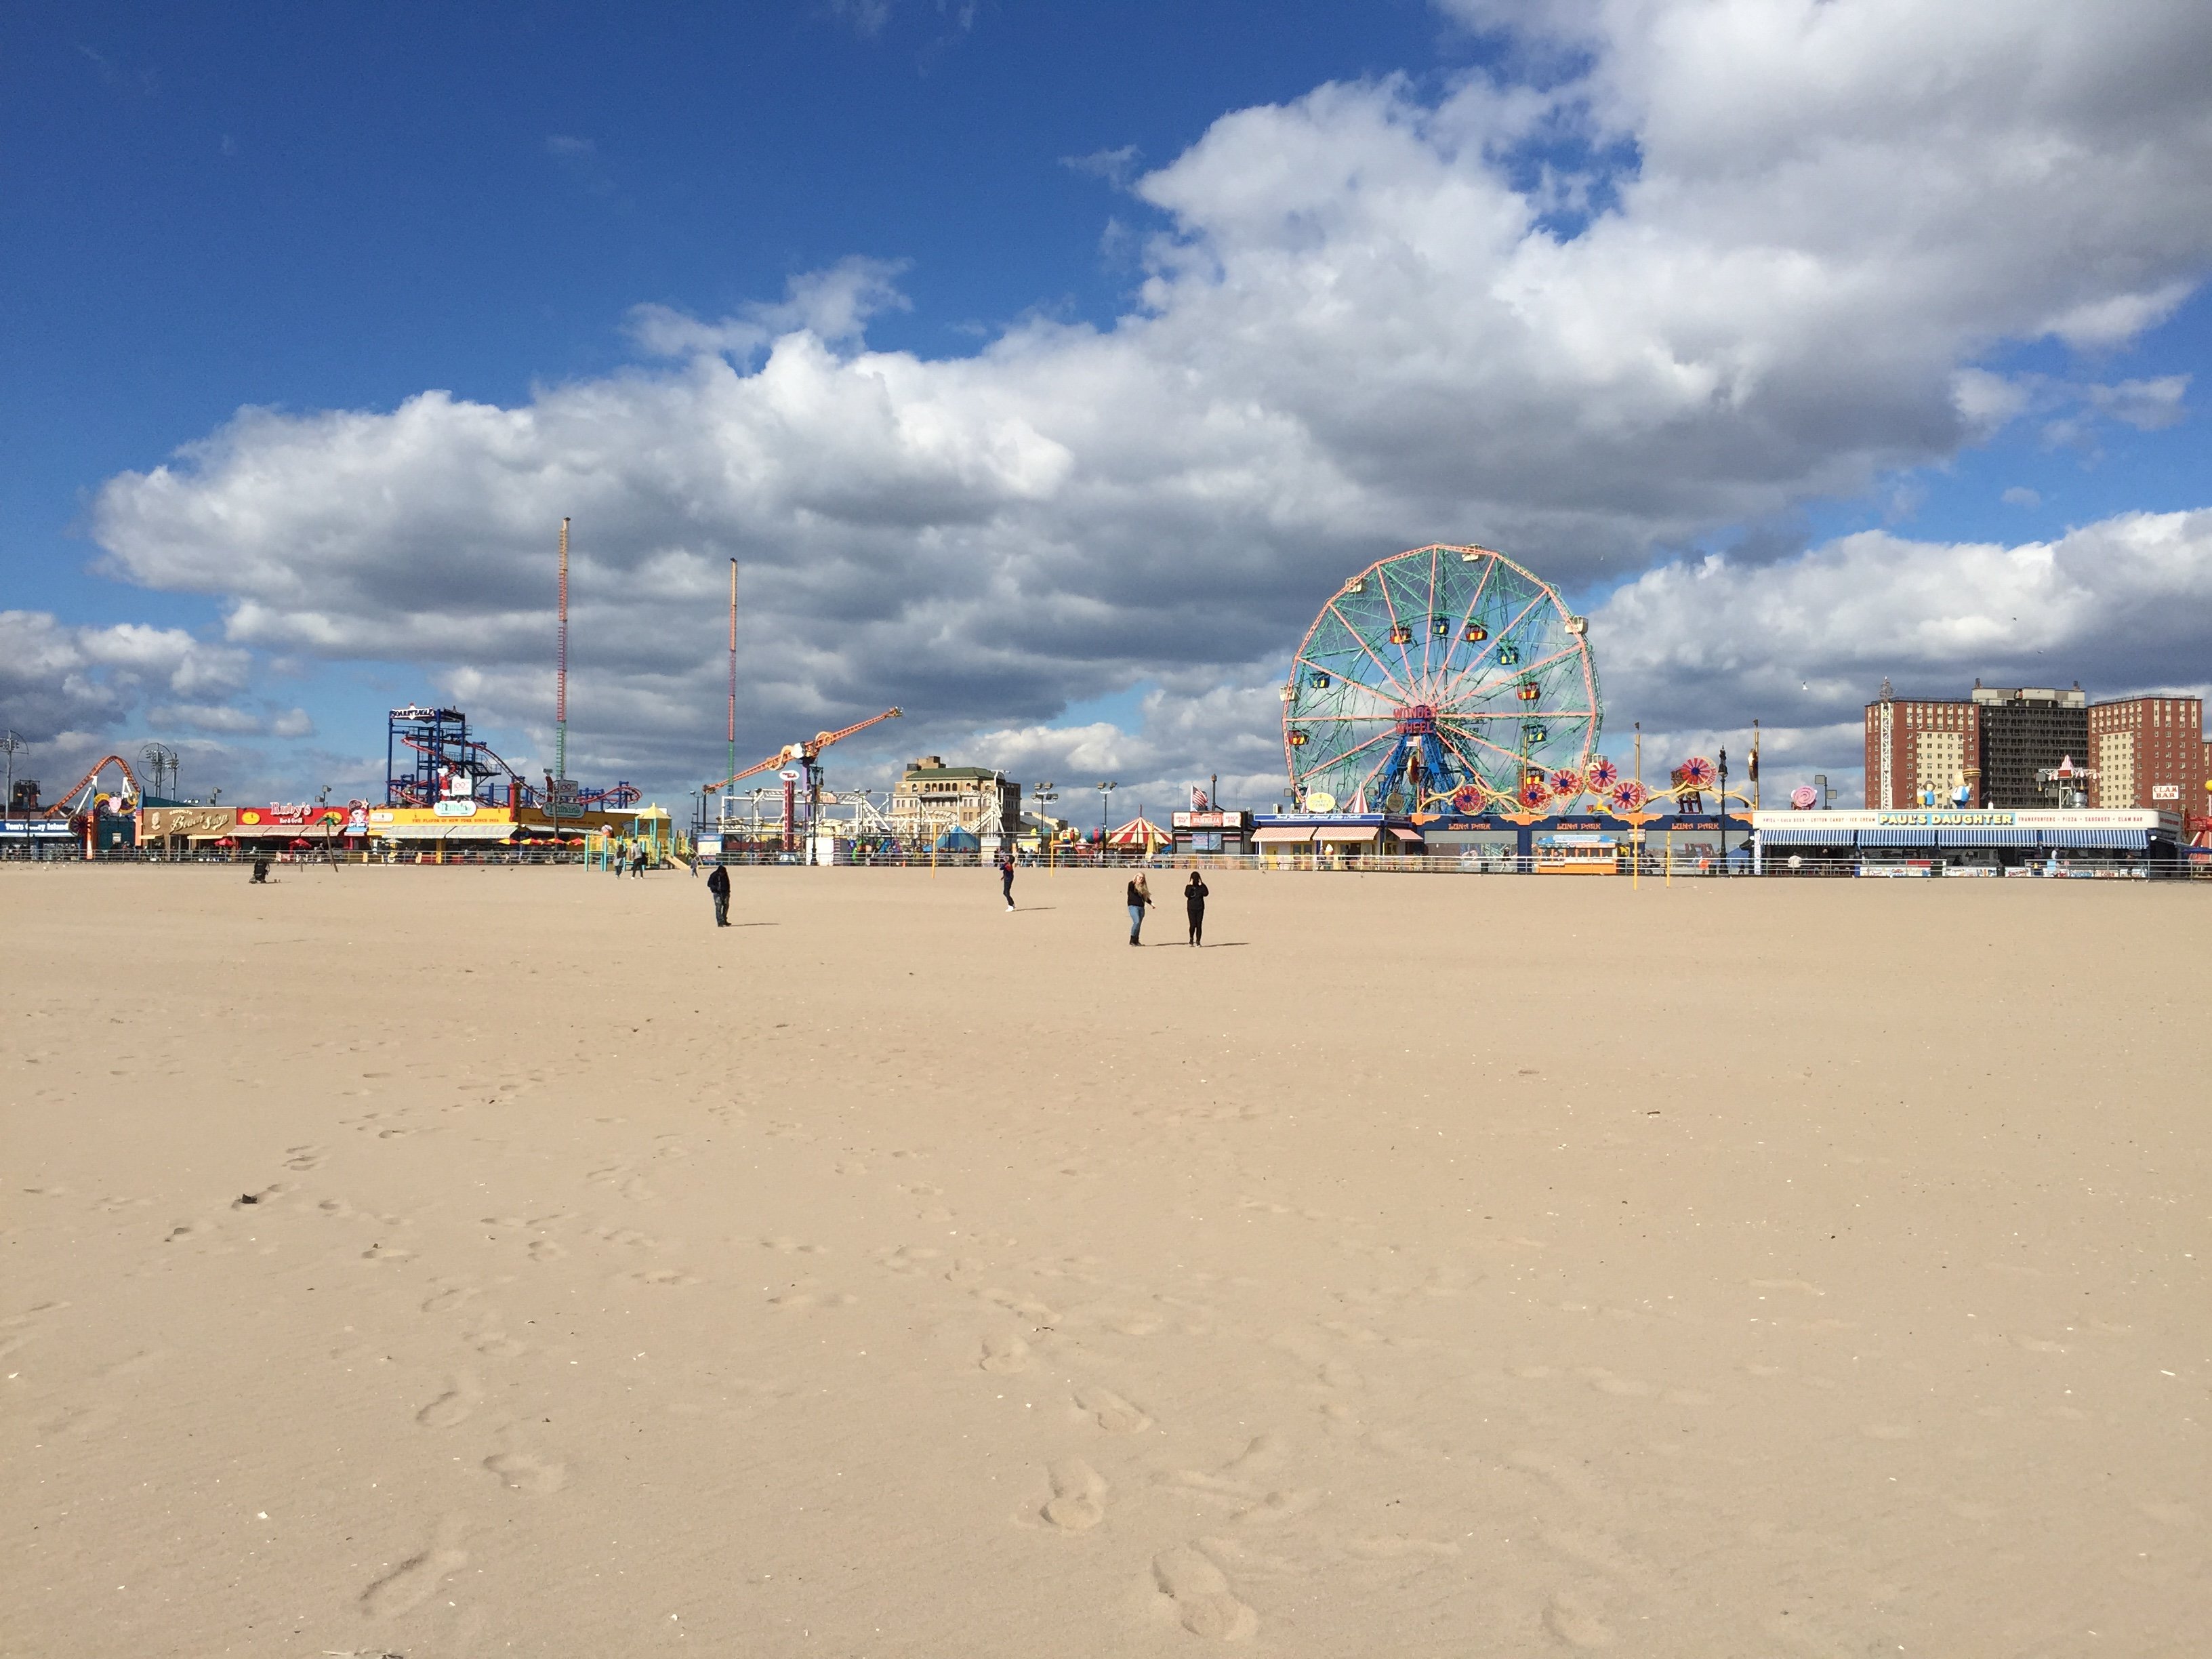 Sandy Beach & Carousel.jpg